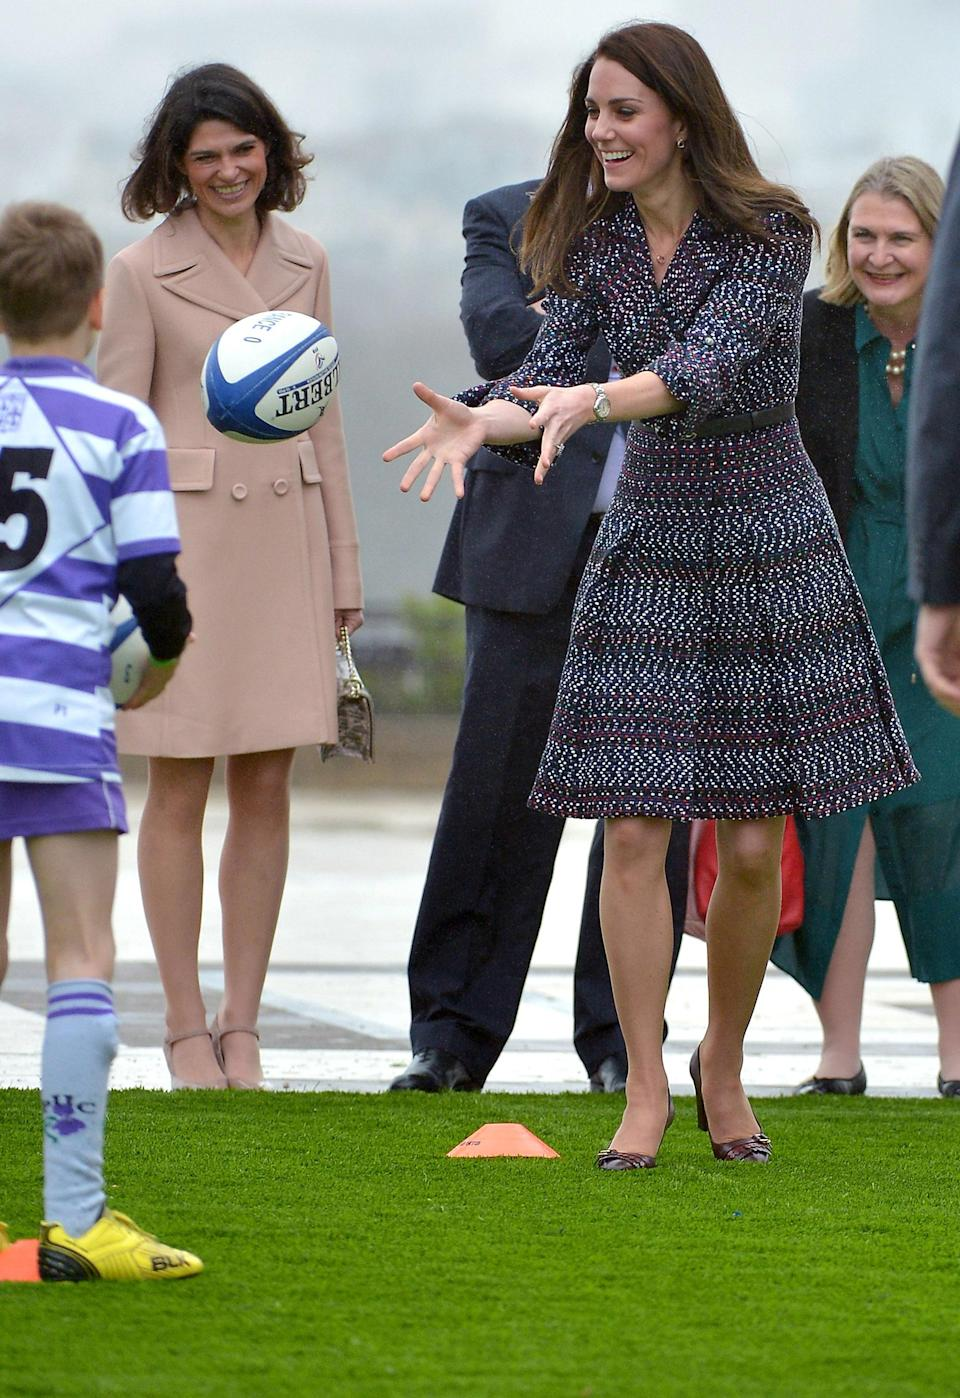 <p>PARIS, FRANCE - MARCH 18: Prince William, Duke of Cambridge and Catherine, Duchess of Cambridge meet with members of a rugby team near the Eiffel Tower on March 18, 2017 in Paris, France. The Duke and Duchess are on a two day tour of France. (Photo by Dominique Charriau/WireImage)</p>